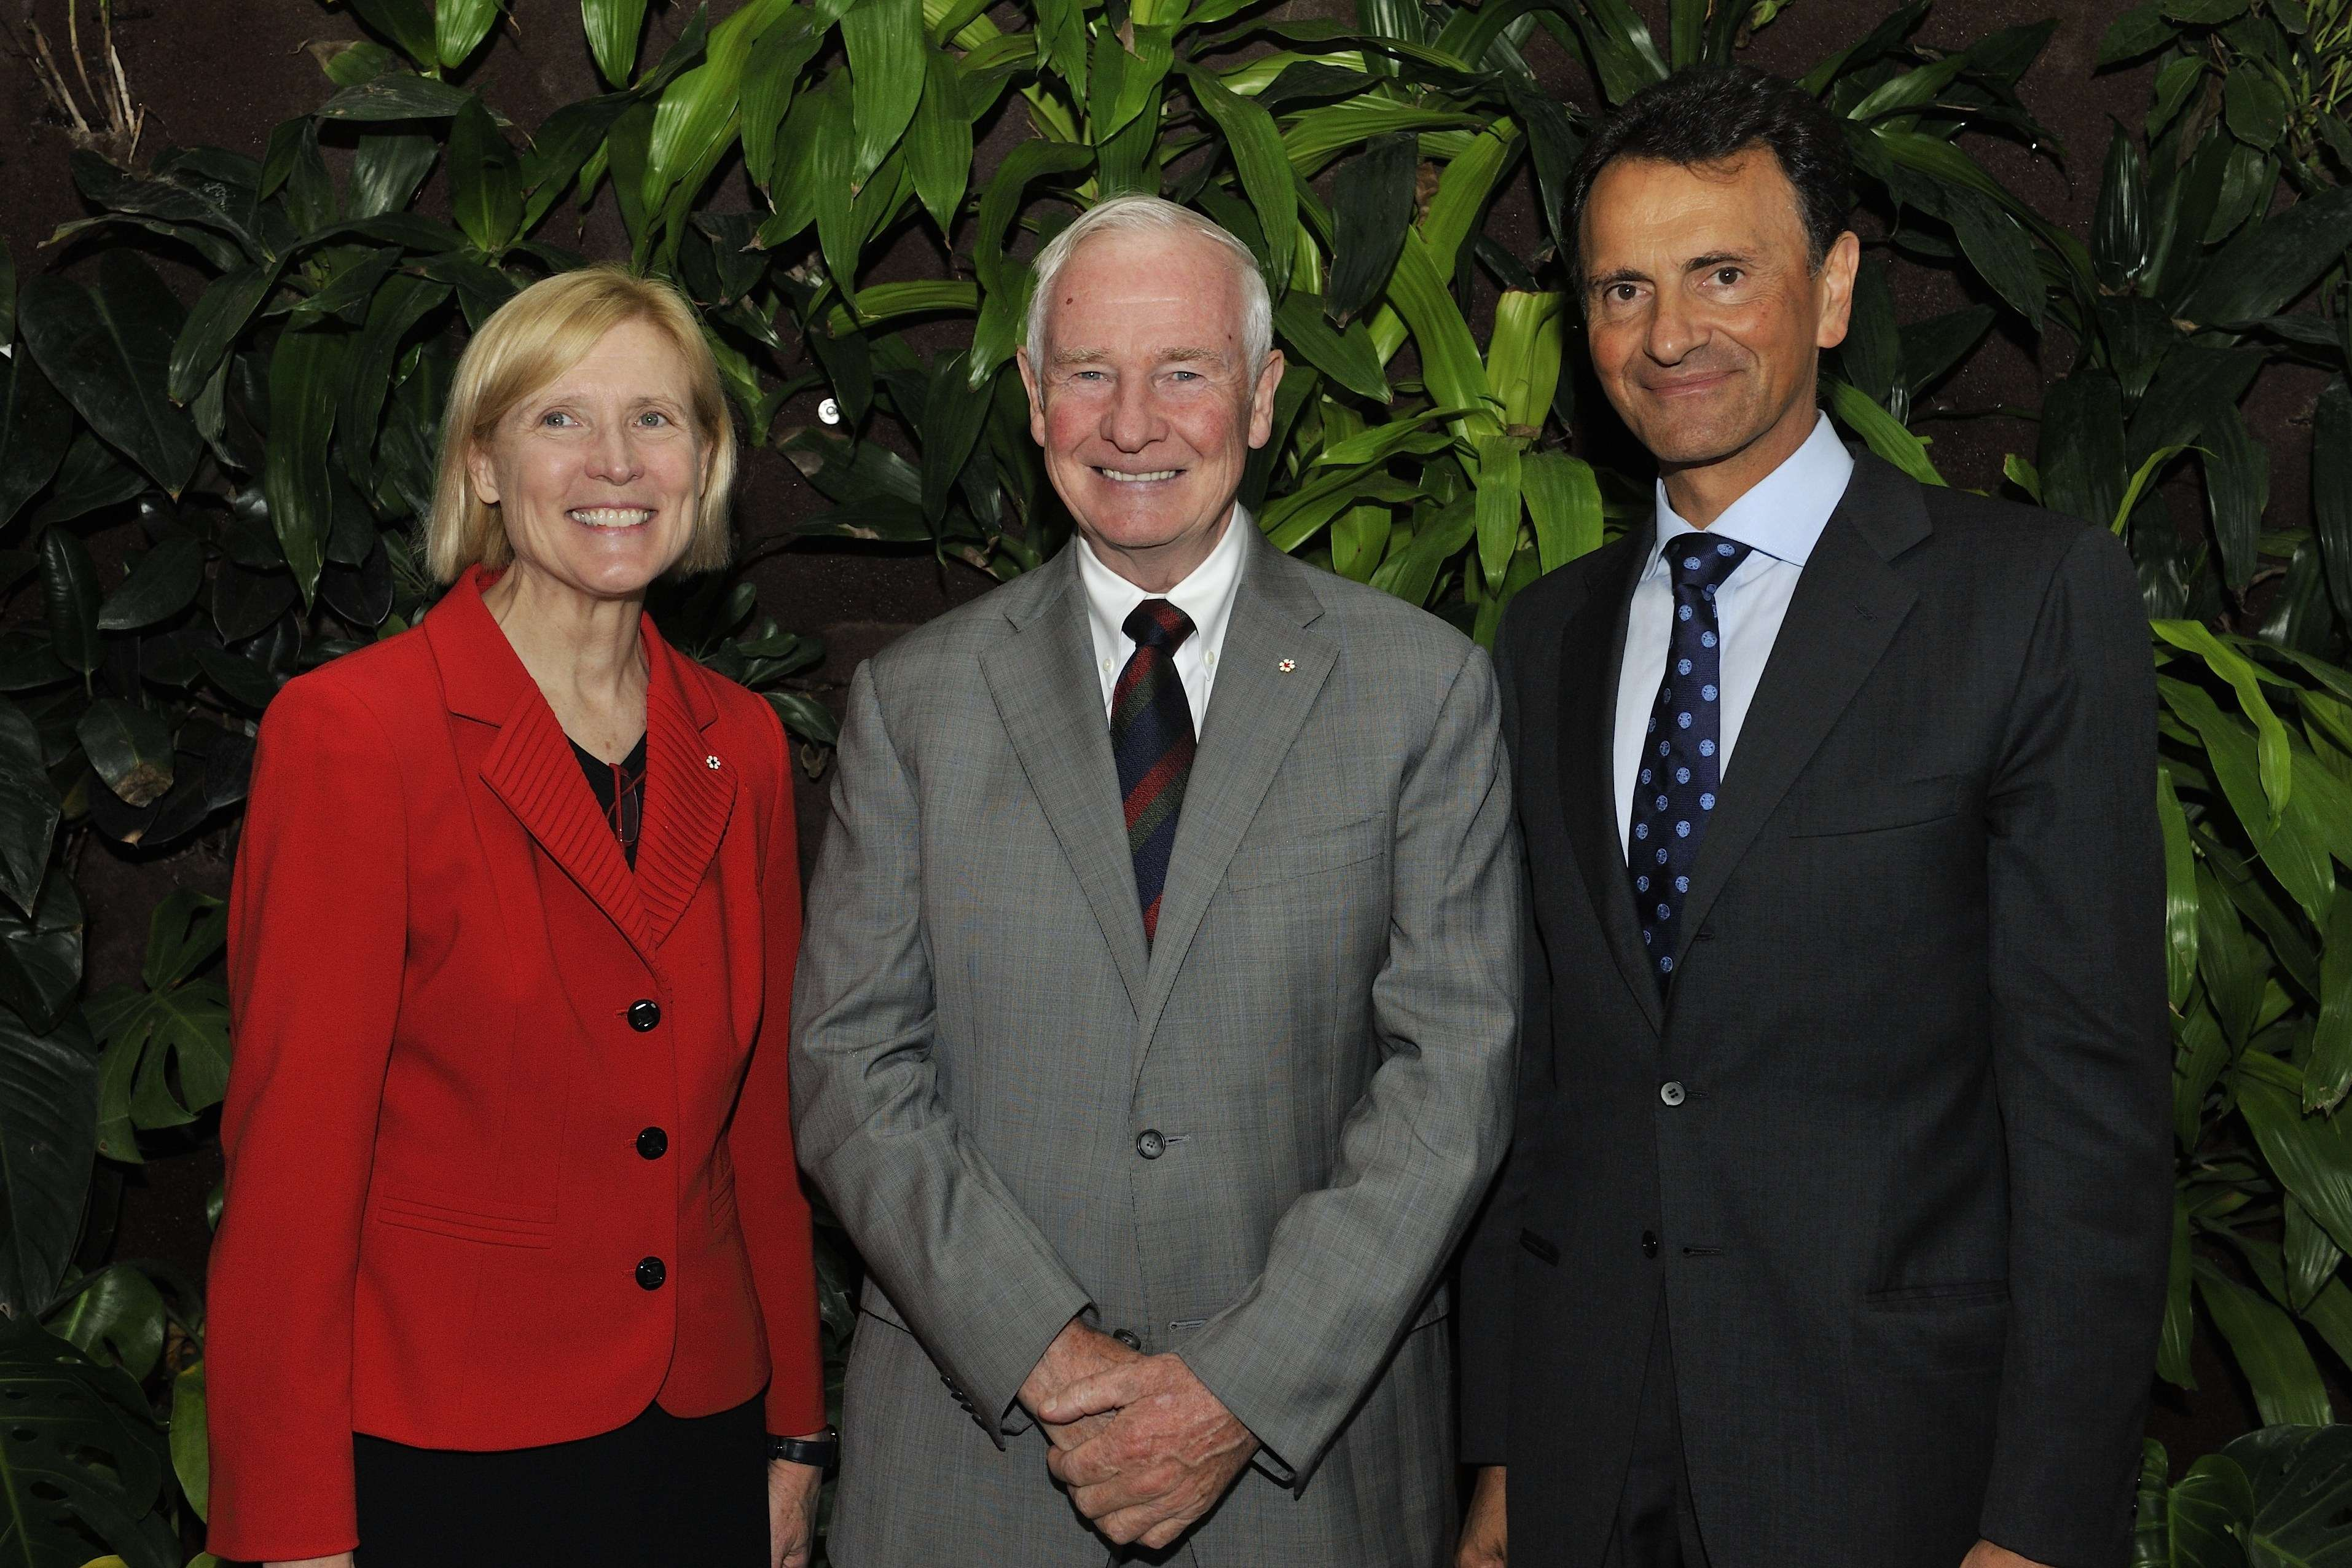 The Governor General was happy to join Ms. Roseann O'Reilly Runte, President and vice-chancellor of Carleton University, and His Excellency Andrea Meloni, Ambassador of Italy to Canada, for this event.